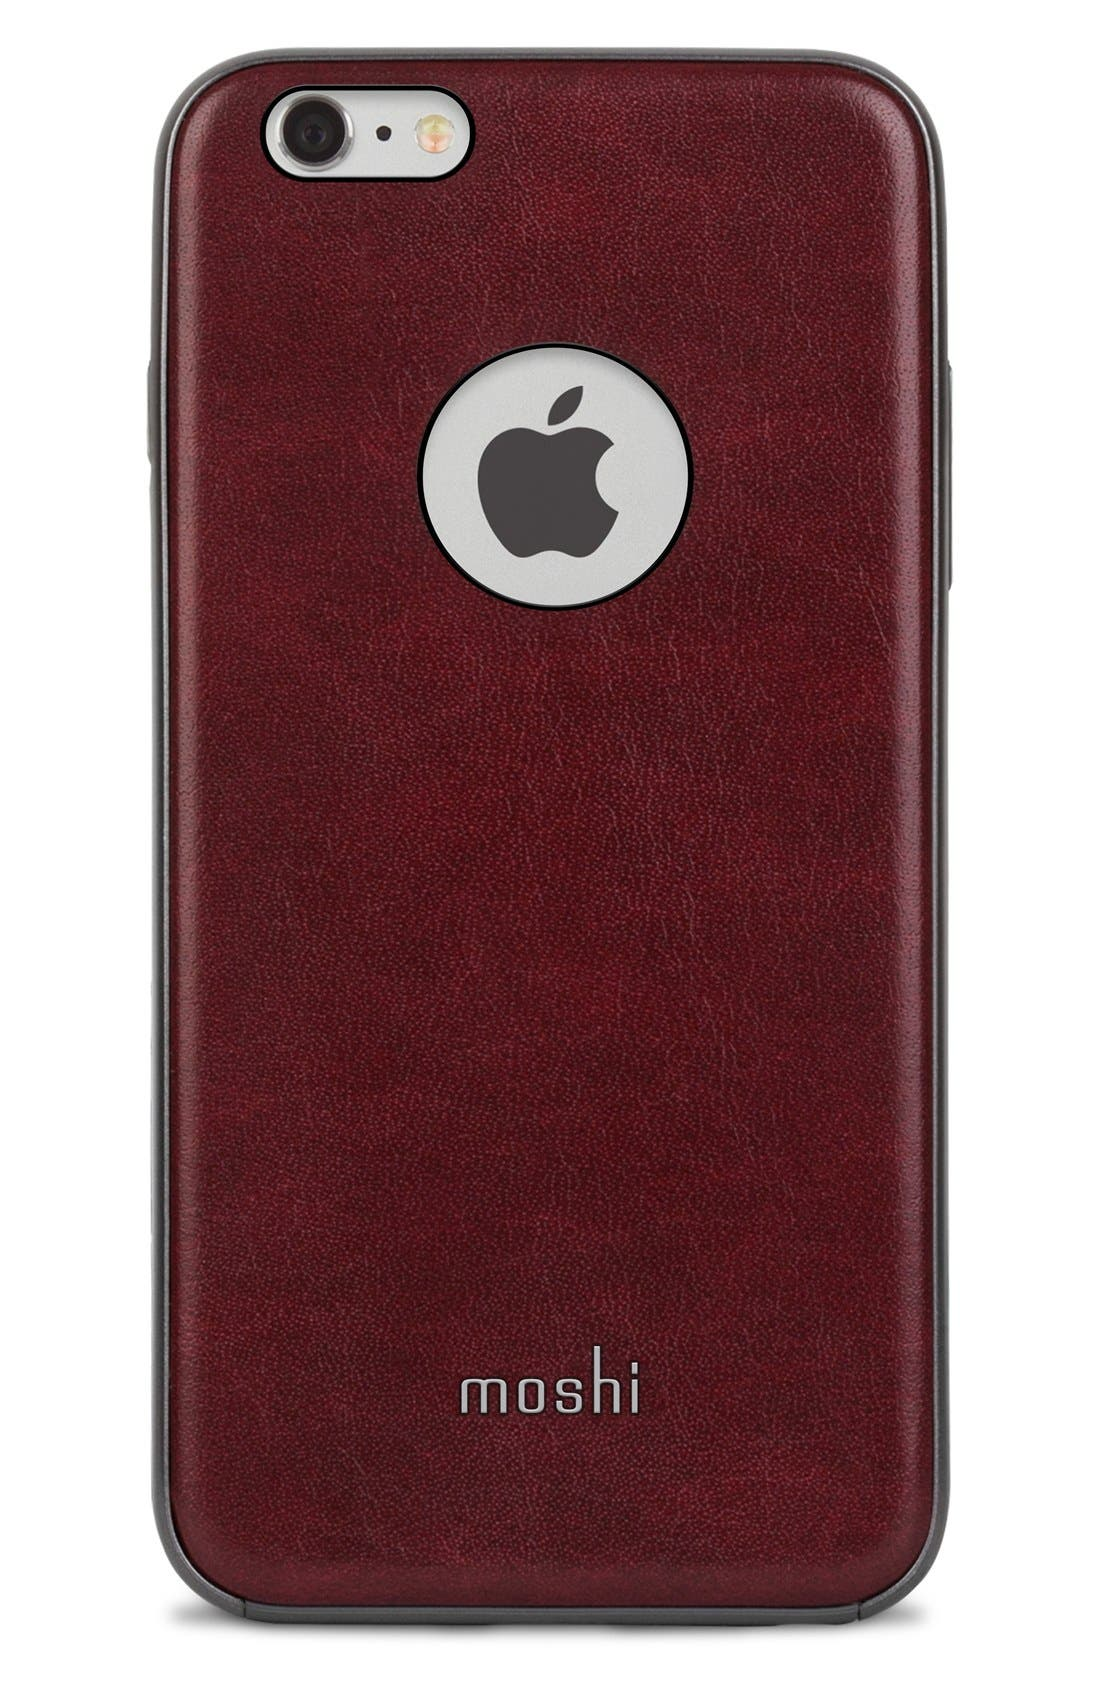 moshi iphone case moshi iglaze iphone 6 plus amp 6s plus nordstrom 7367